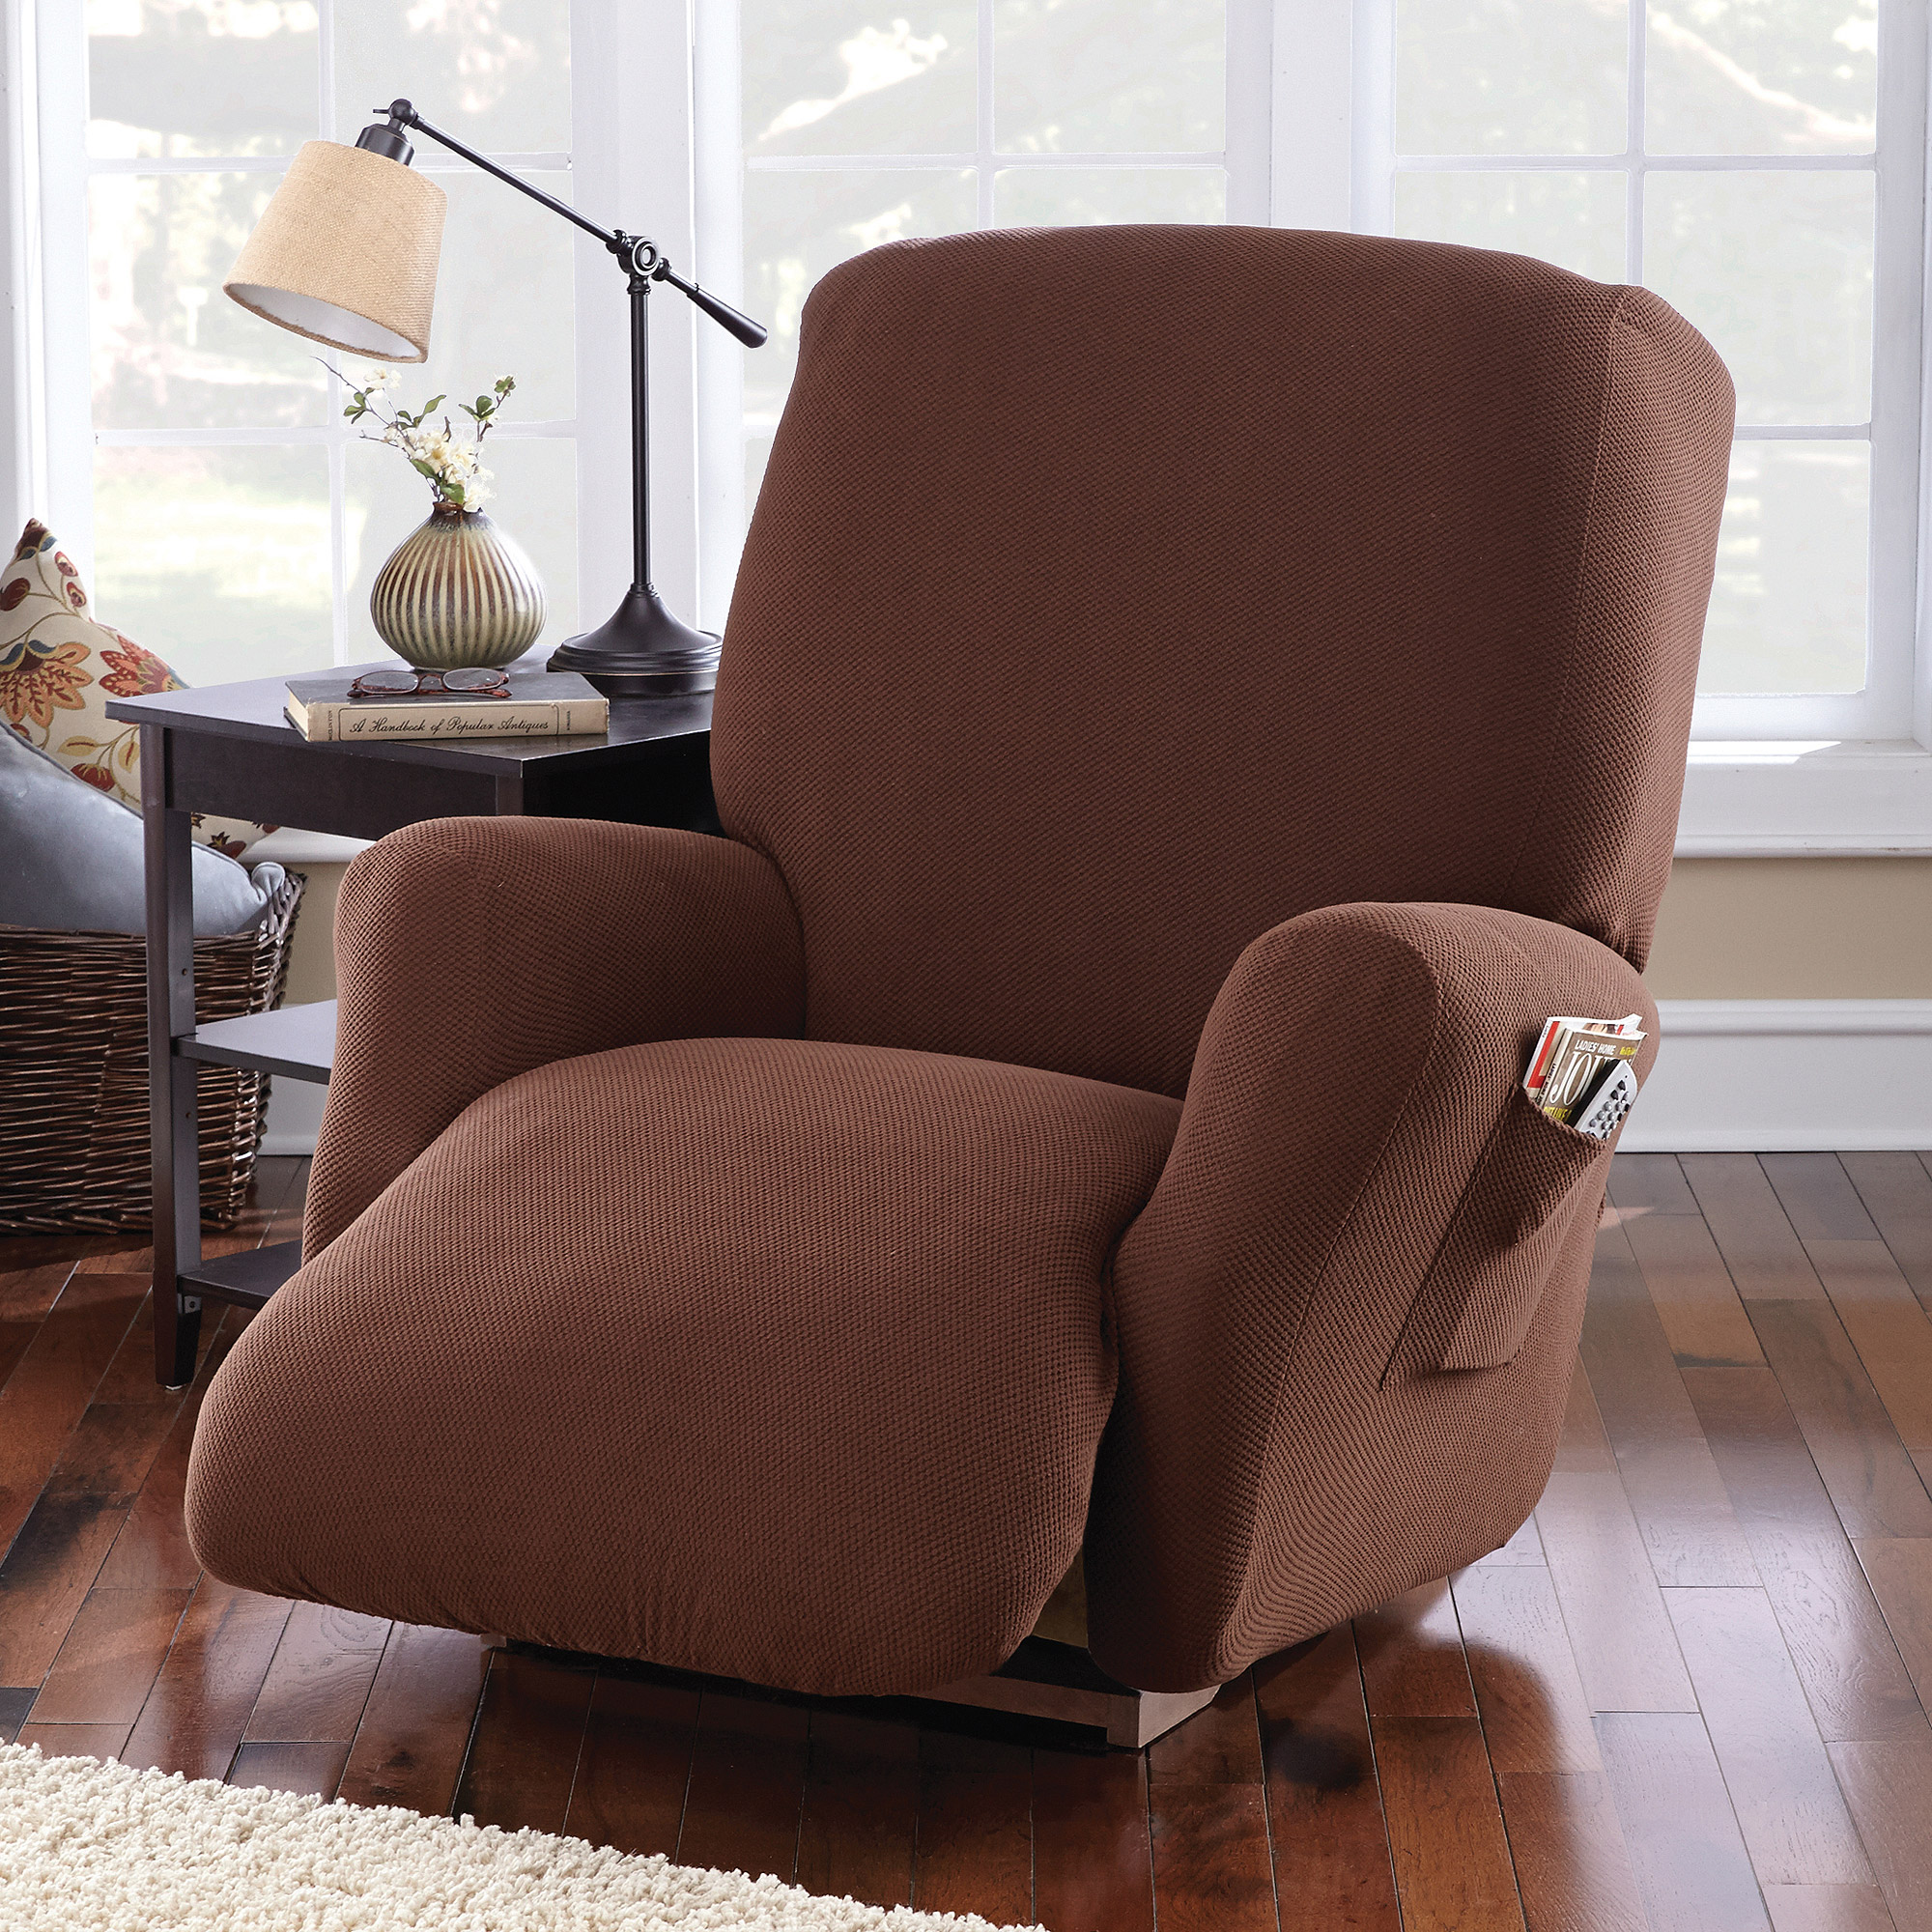 Recliner Covers | Barrel Chair Slipcover | Recliner Covers Target